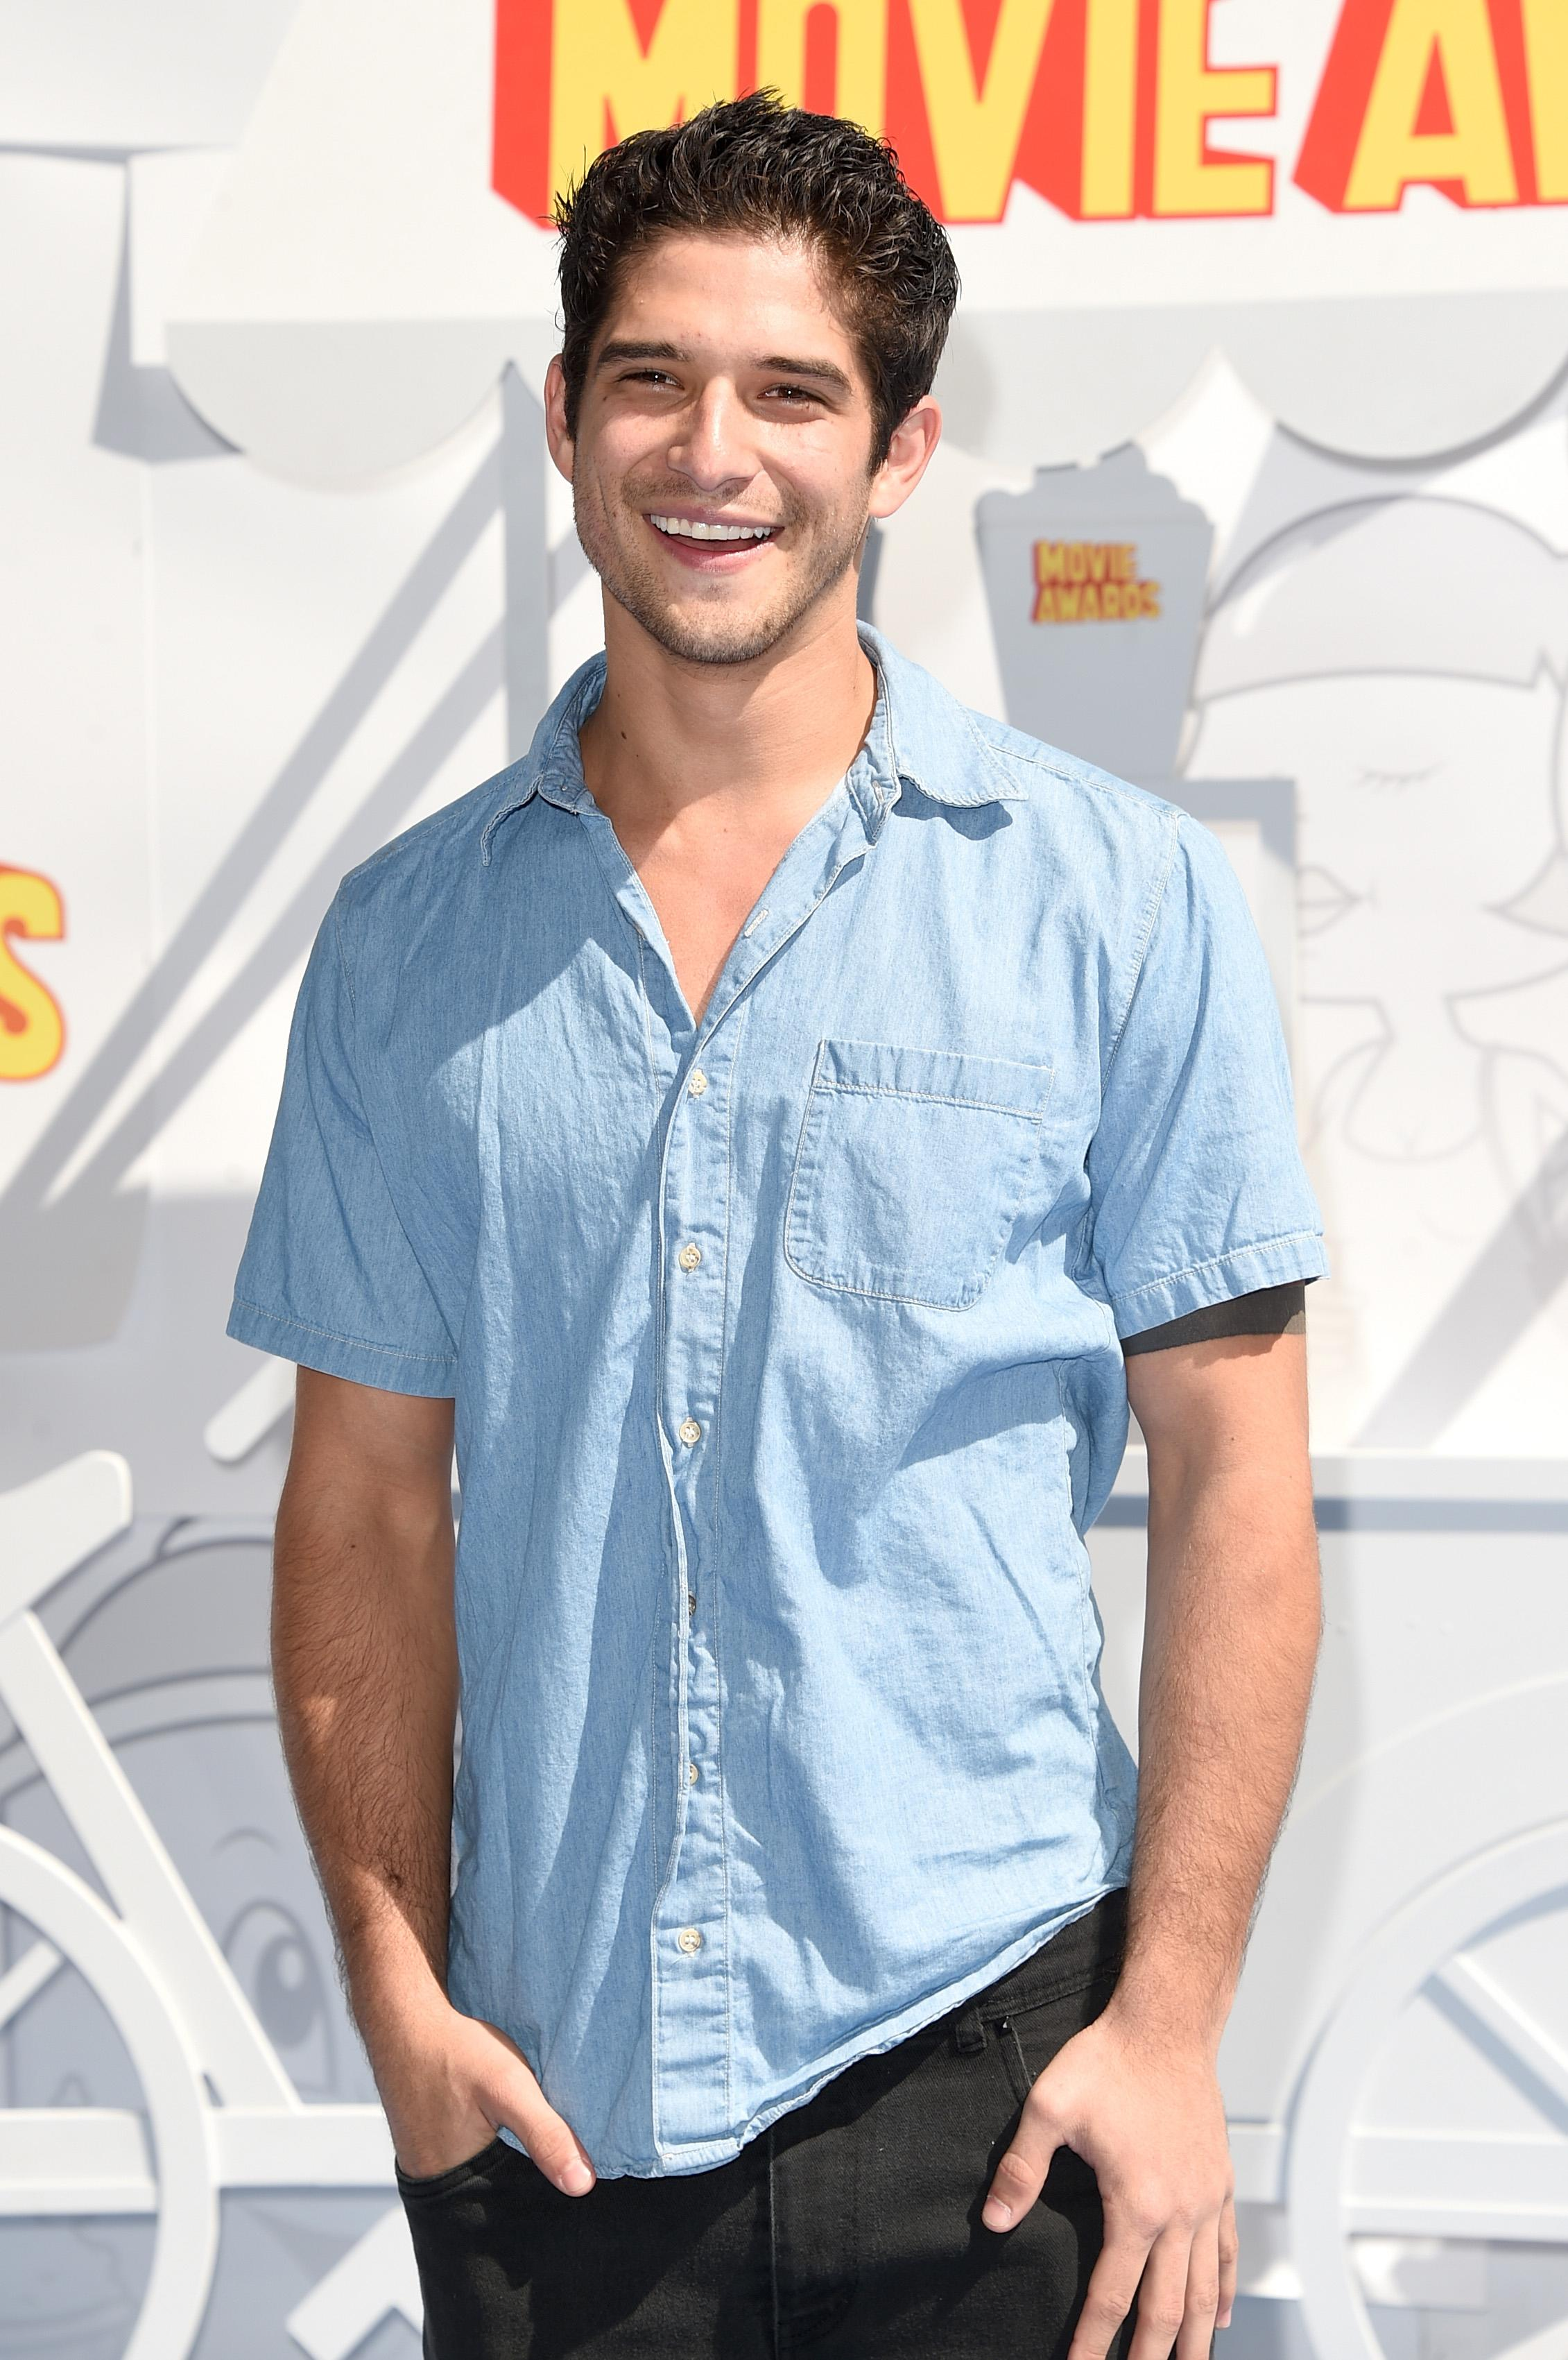 MTV Movie Awards: Tyler Posey, Victoria Justice & More Reveal Favorite Films